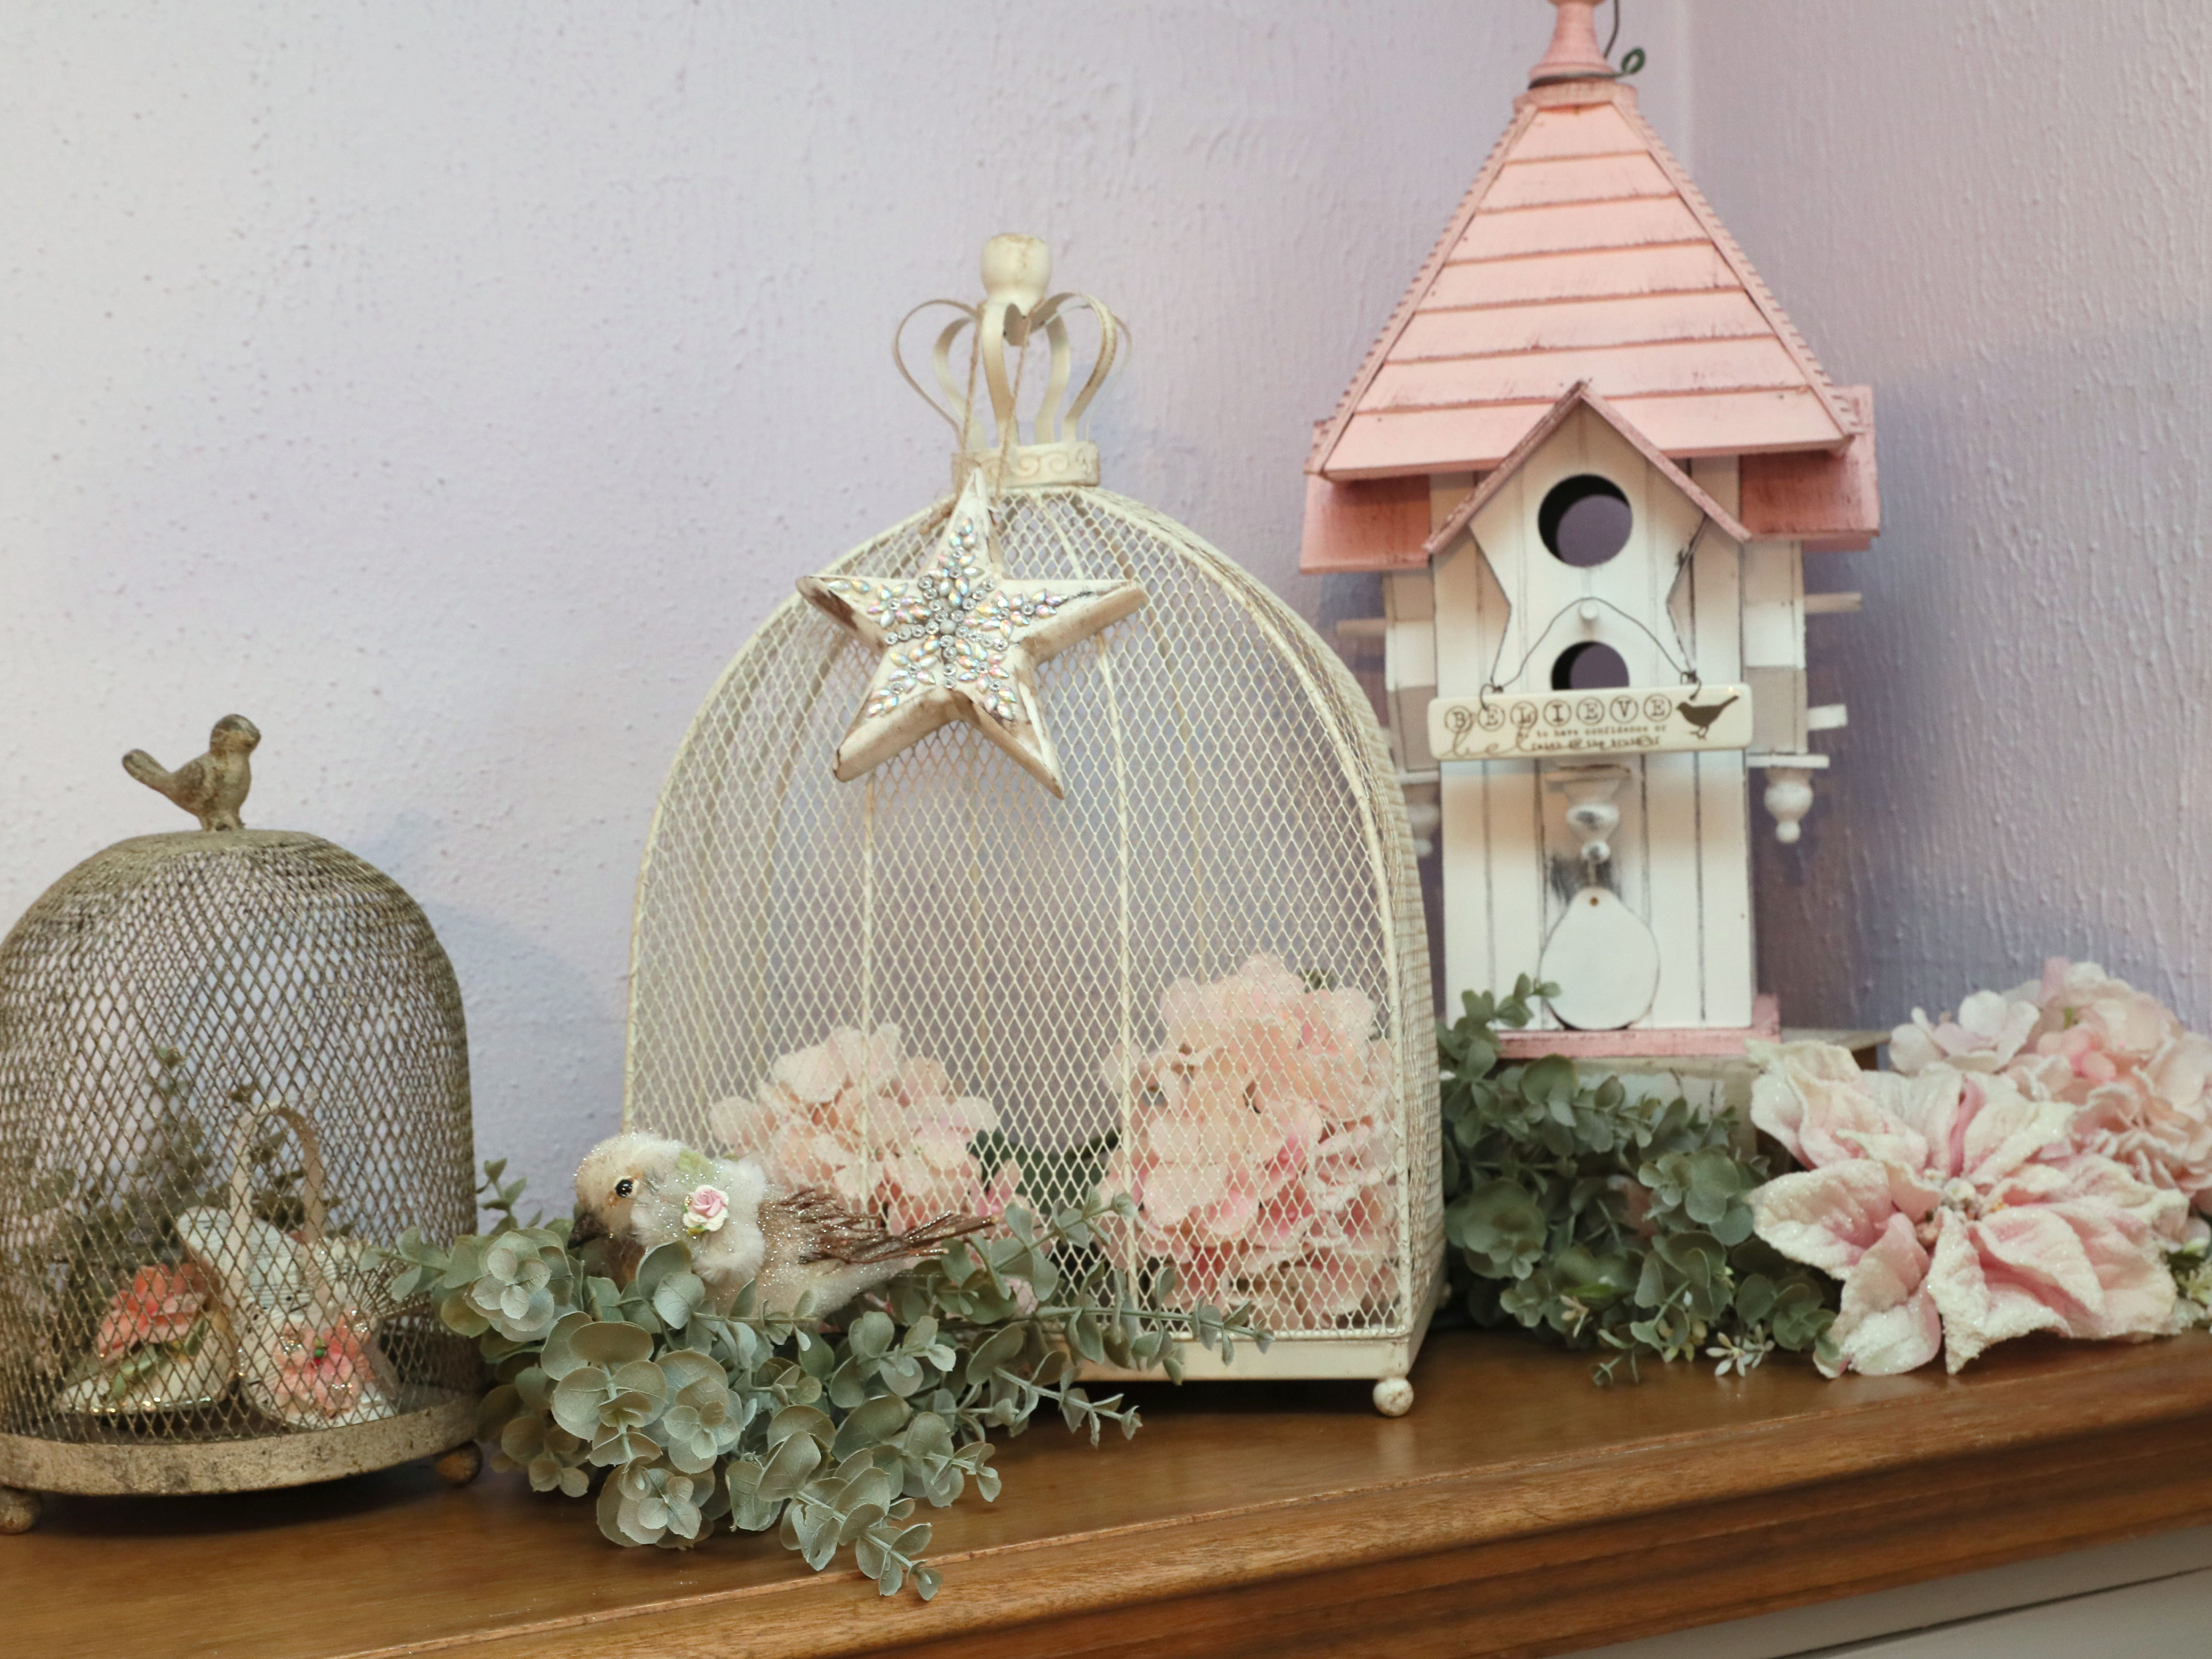 Bird cage and birdhouses are on display in the dining room.